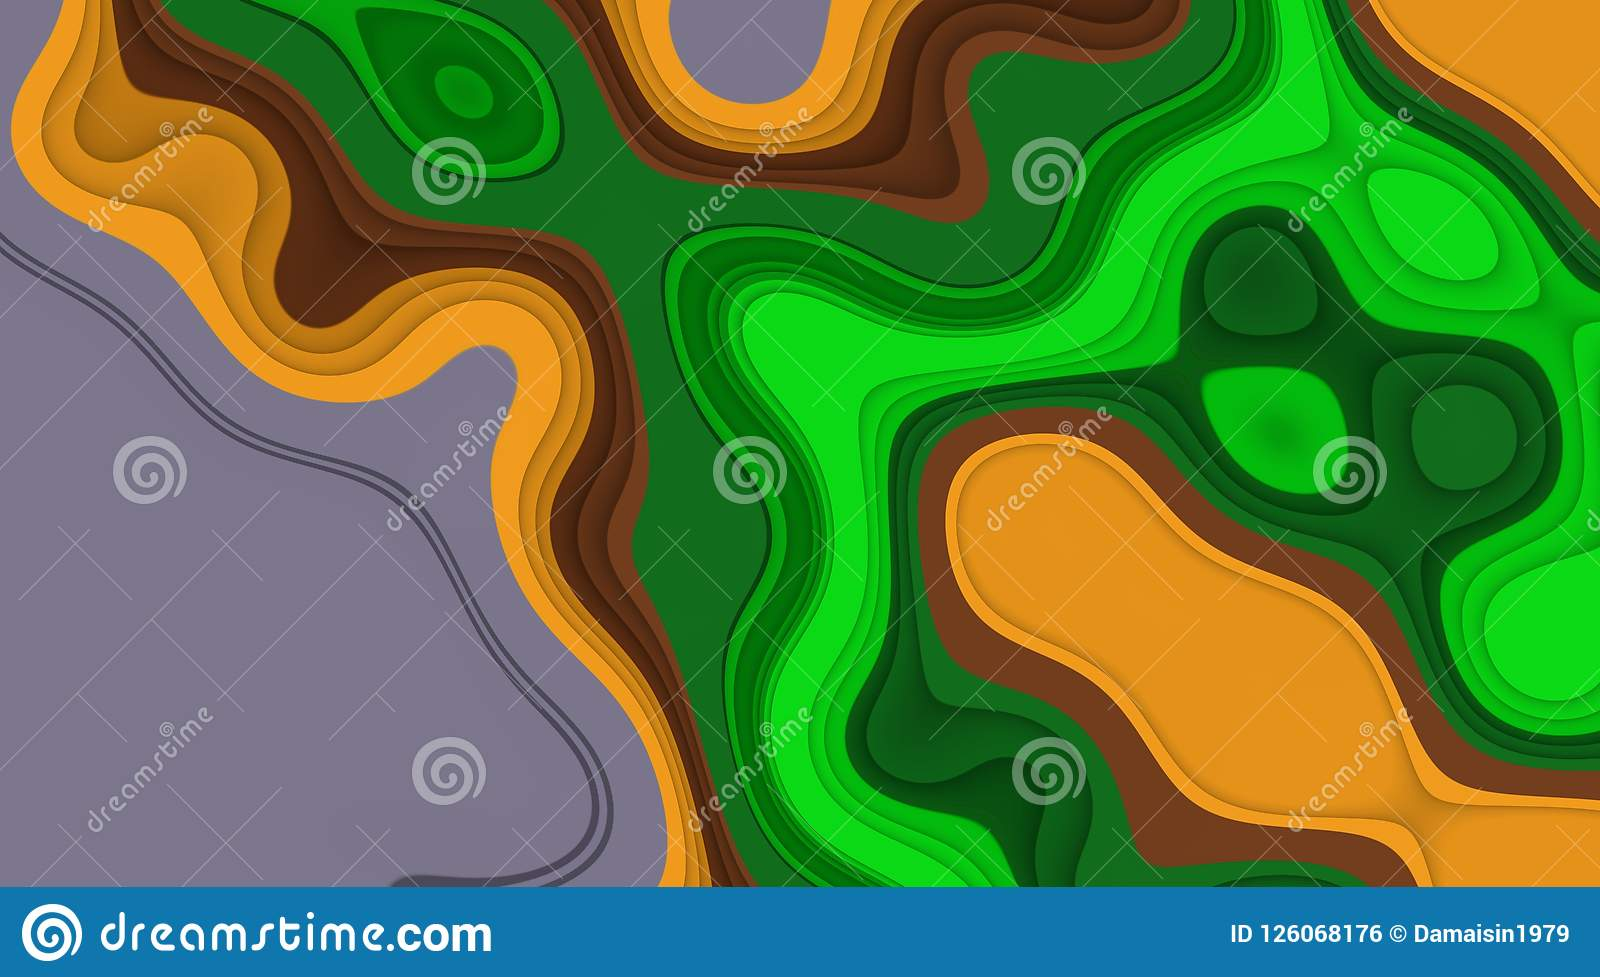 Green Yellow Fluid Vivid Lines Background, Soft Mix Contrasts, Lines ...